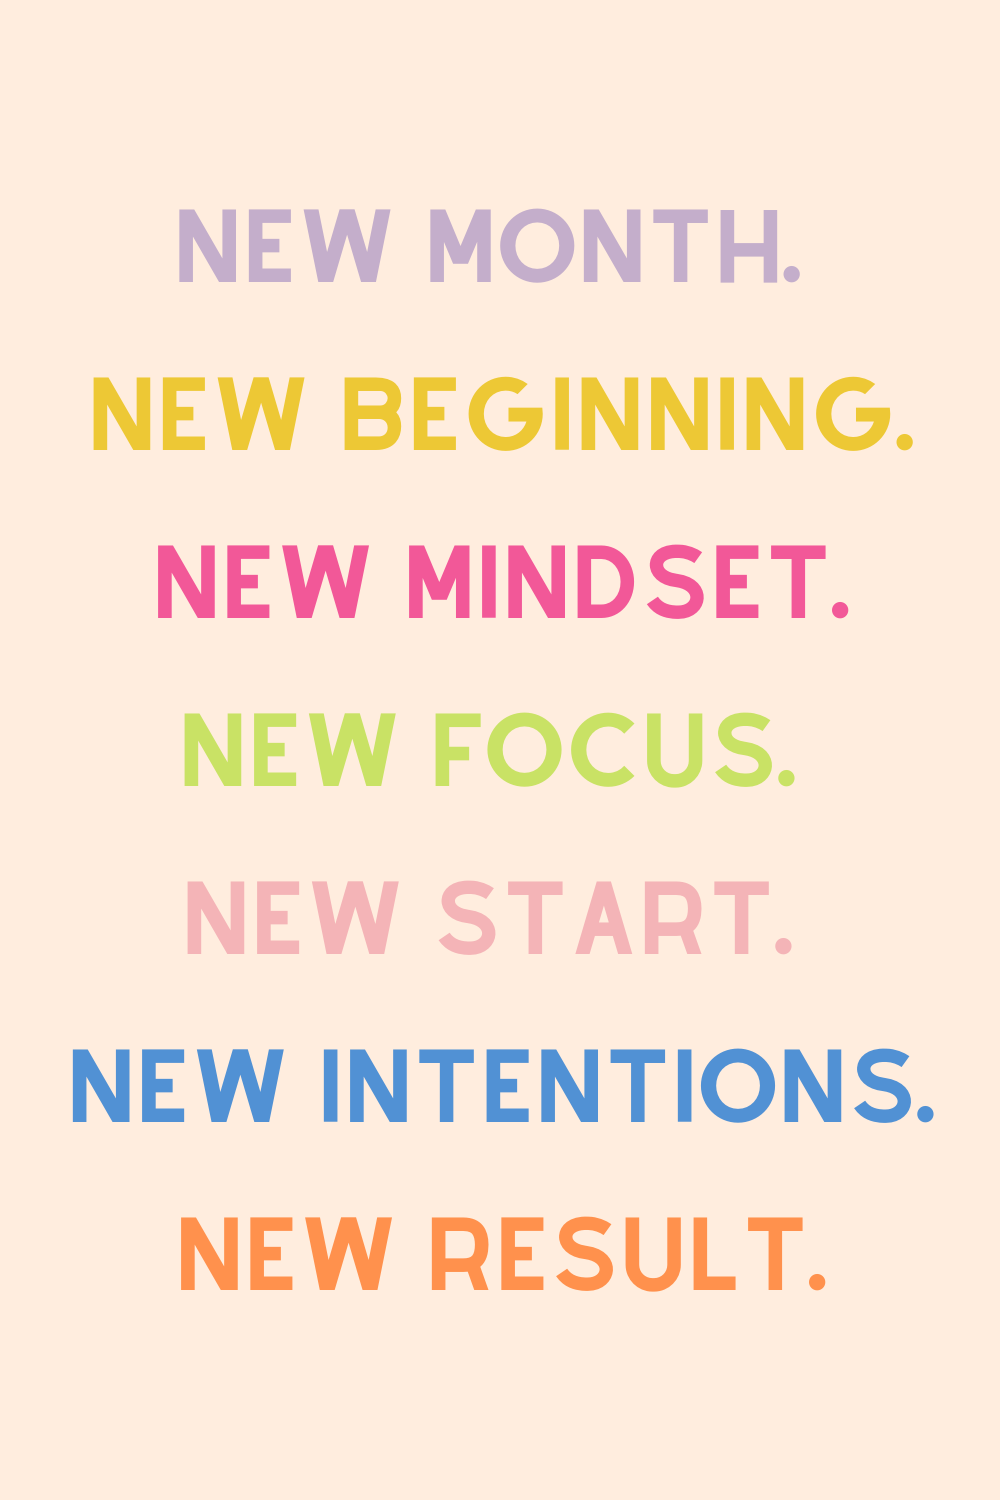 Quotes for a New Month